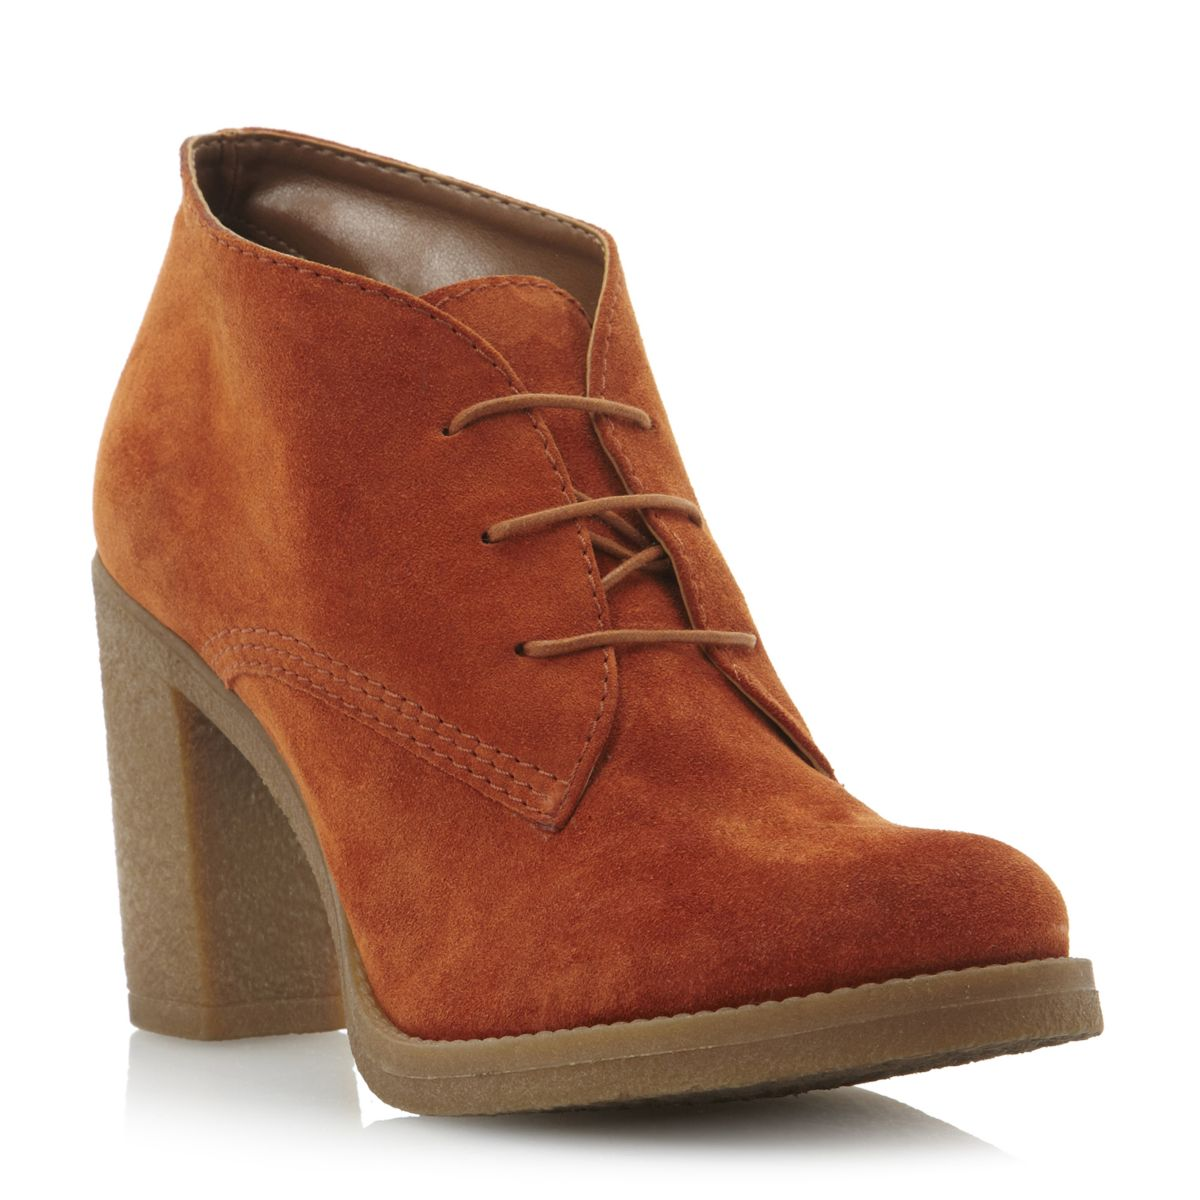 Perfect First The Height Of The Heel The Wonderful Thing About This Type Of Footwear, Is There Is A Boot For Everyone! There Are The Flat Versions For Women Who Dont Wear  Wearing An Ankle Boot Is Really No Different Than Wearing A Full Length Boot